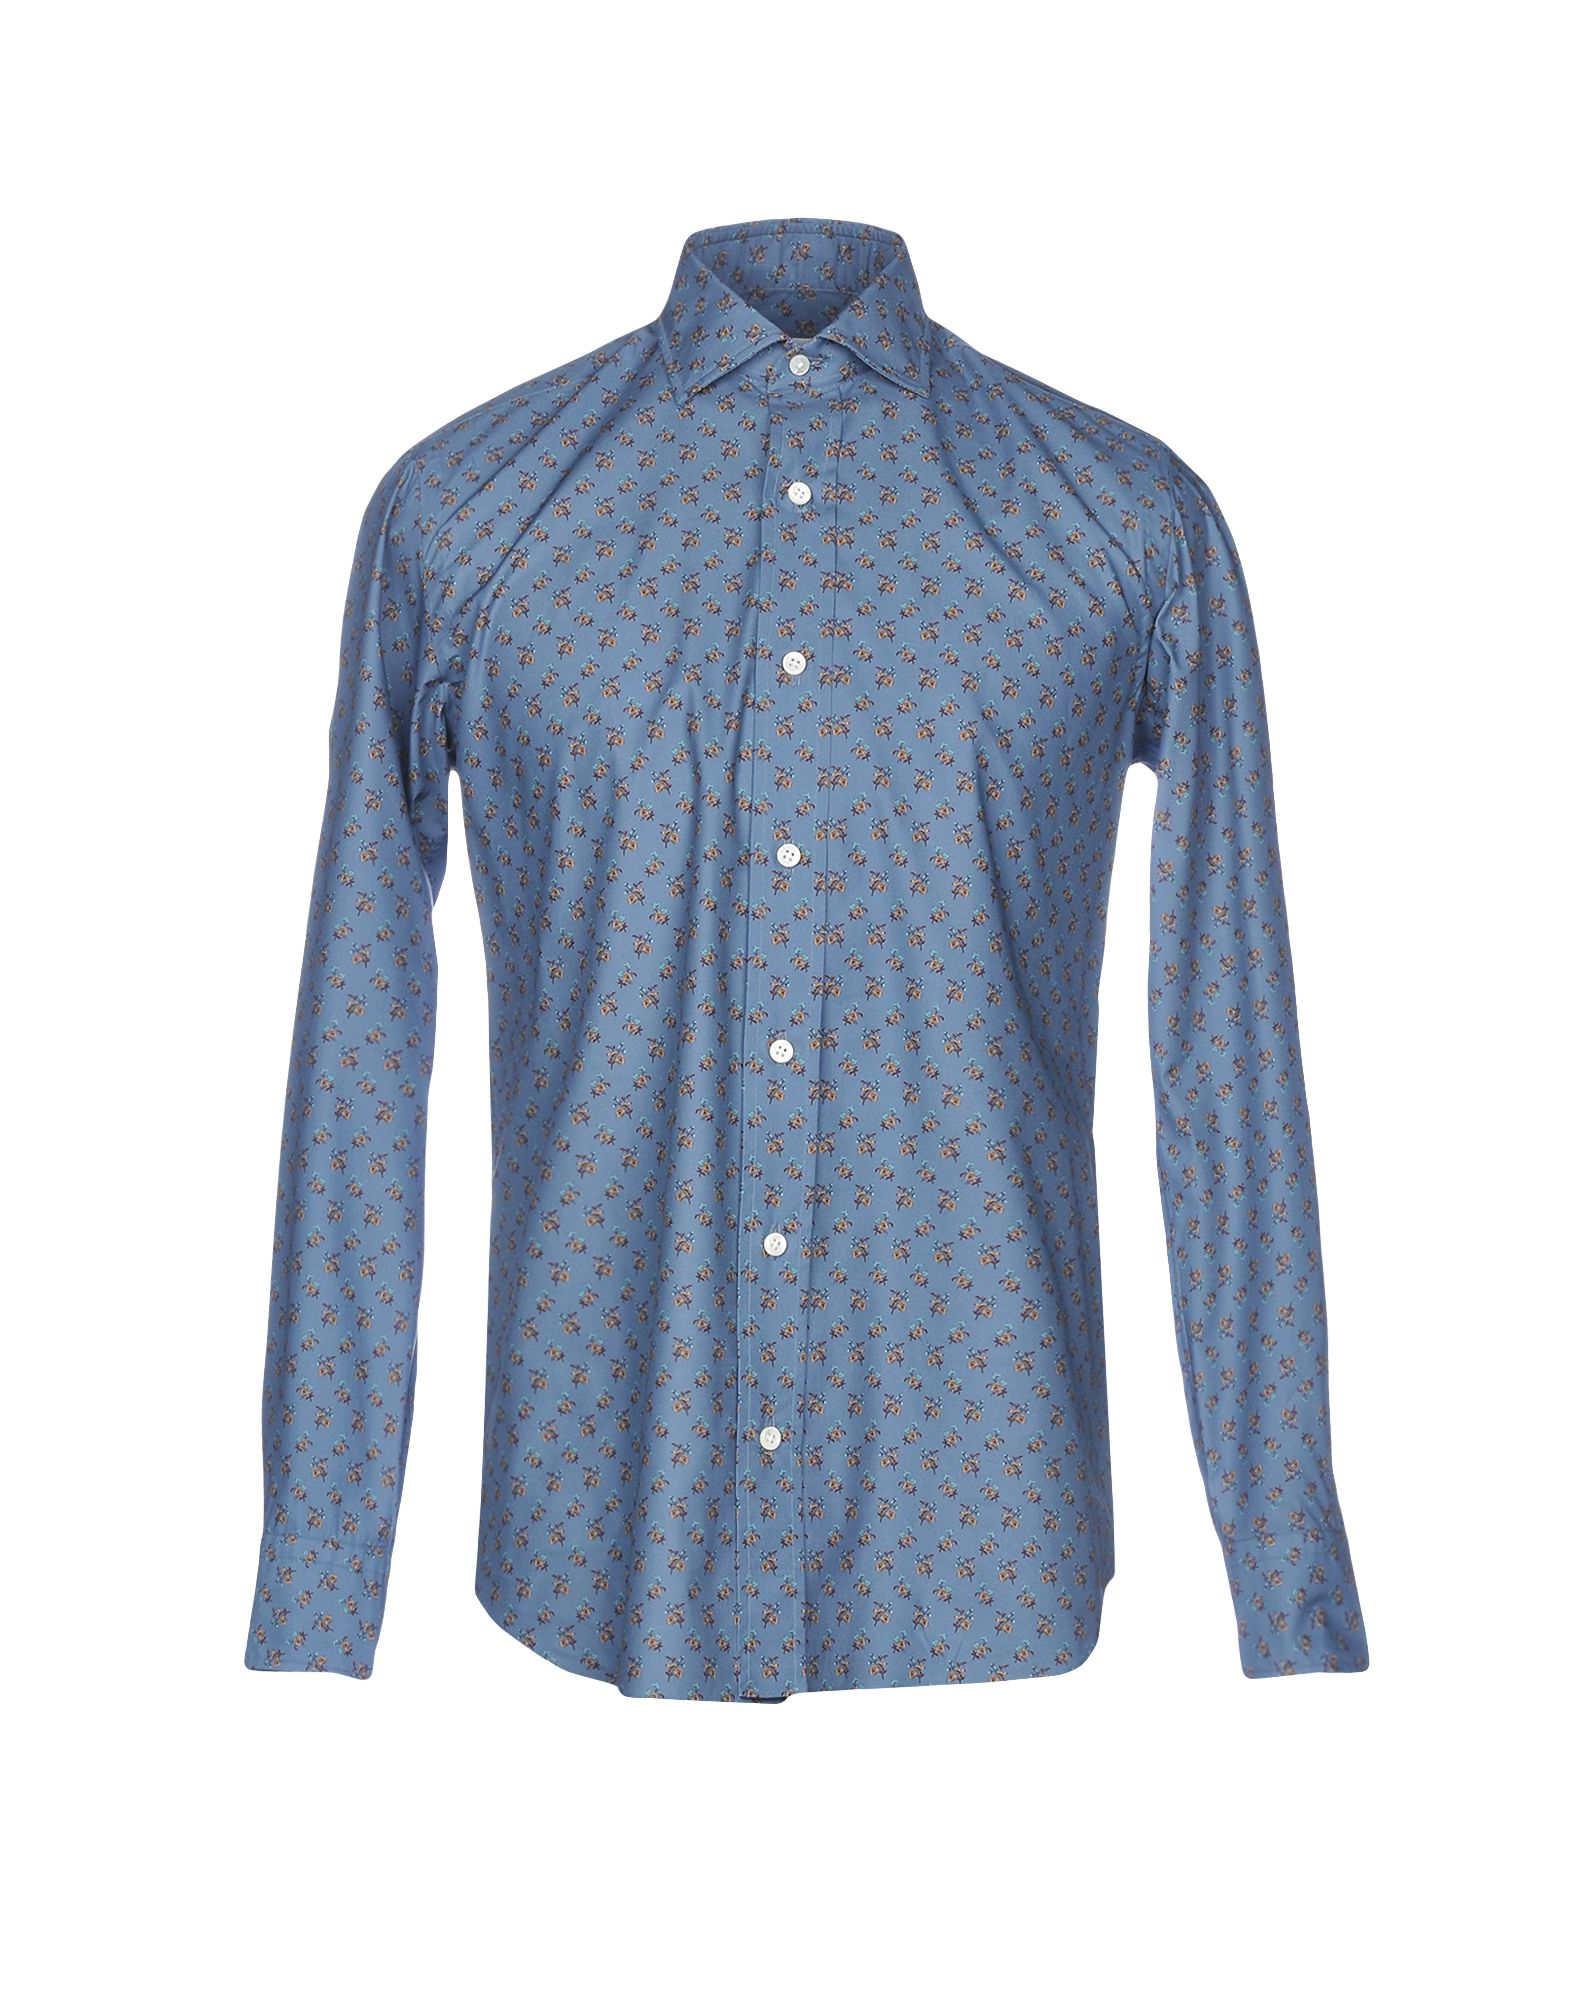 SALVATORE PICCOLO Patterned Shirt in Slate Blue